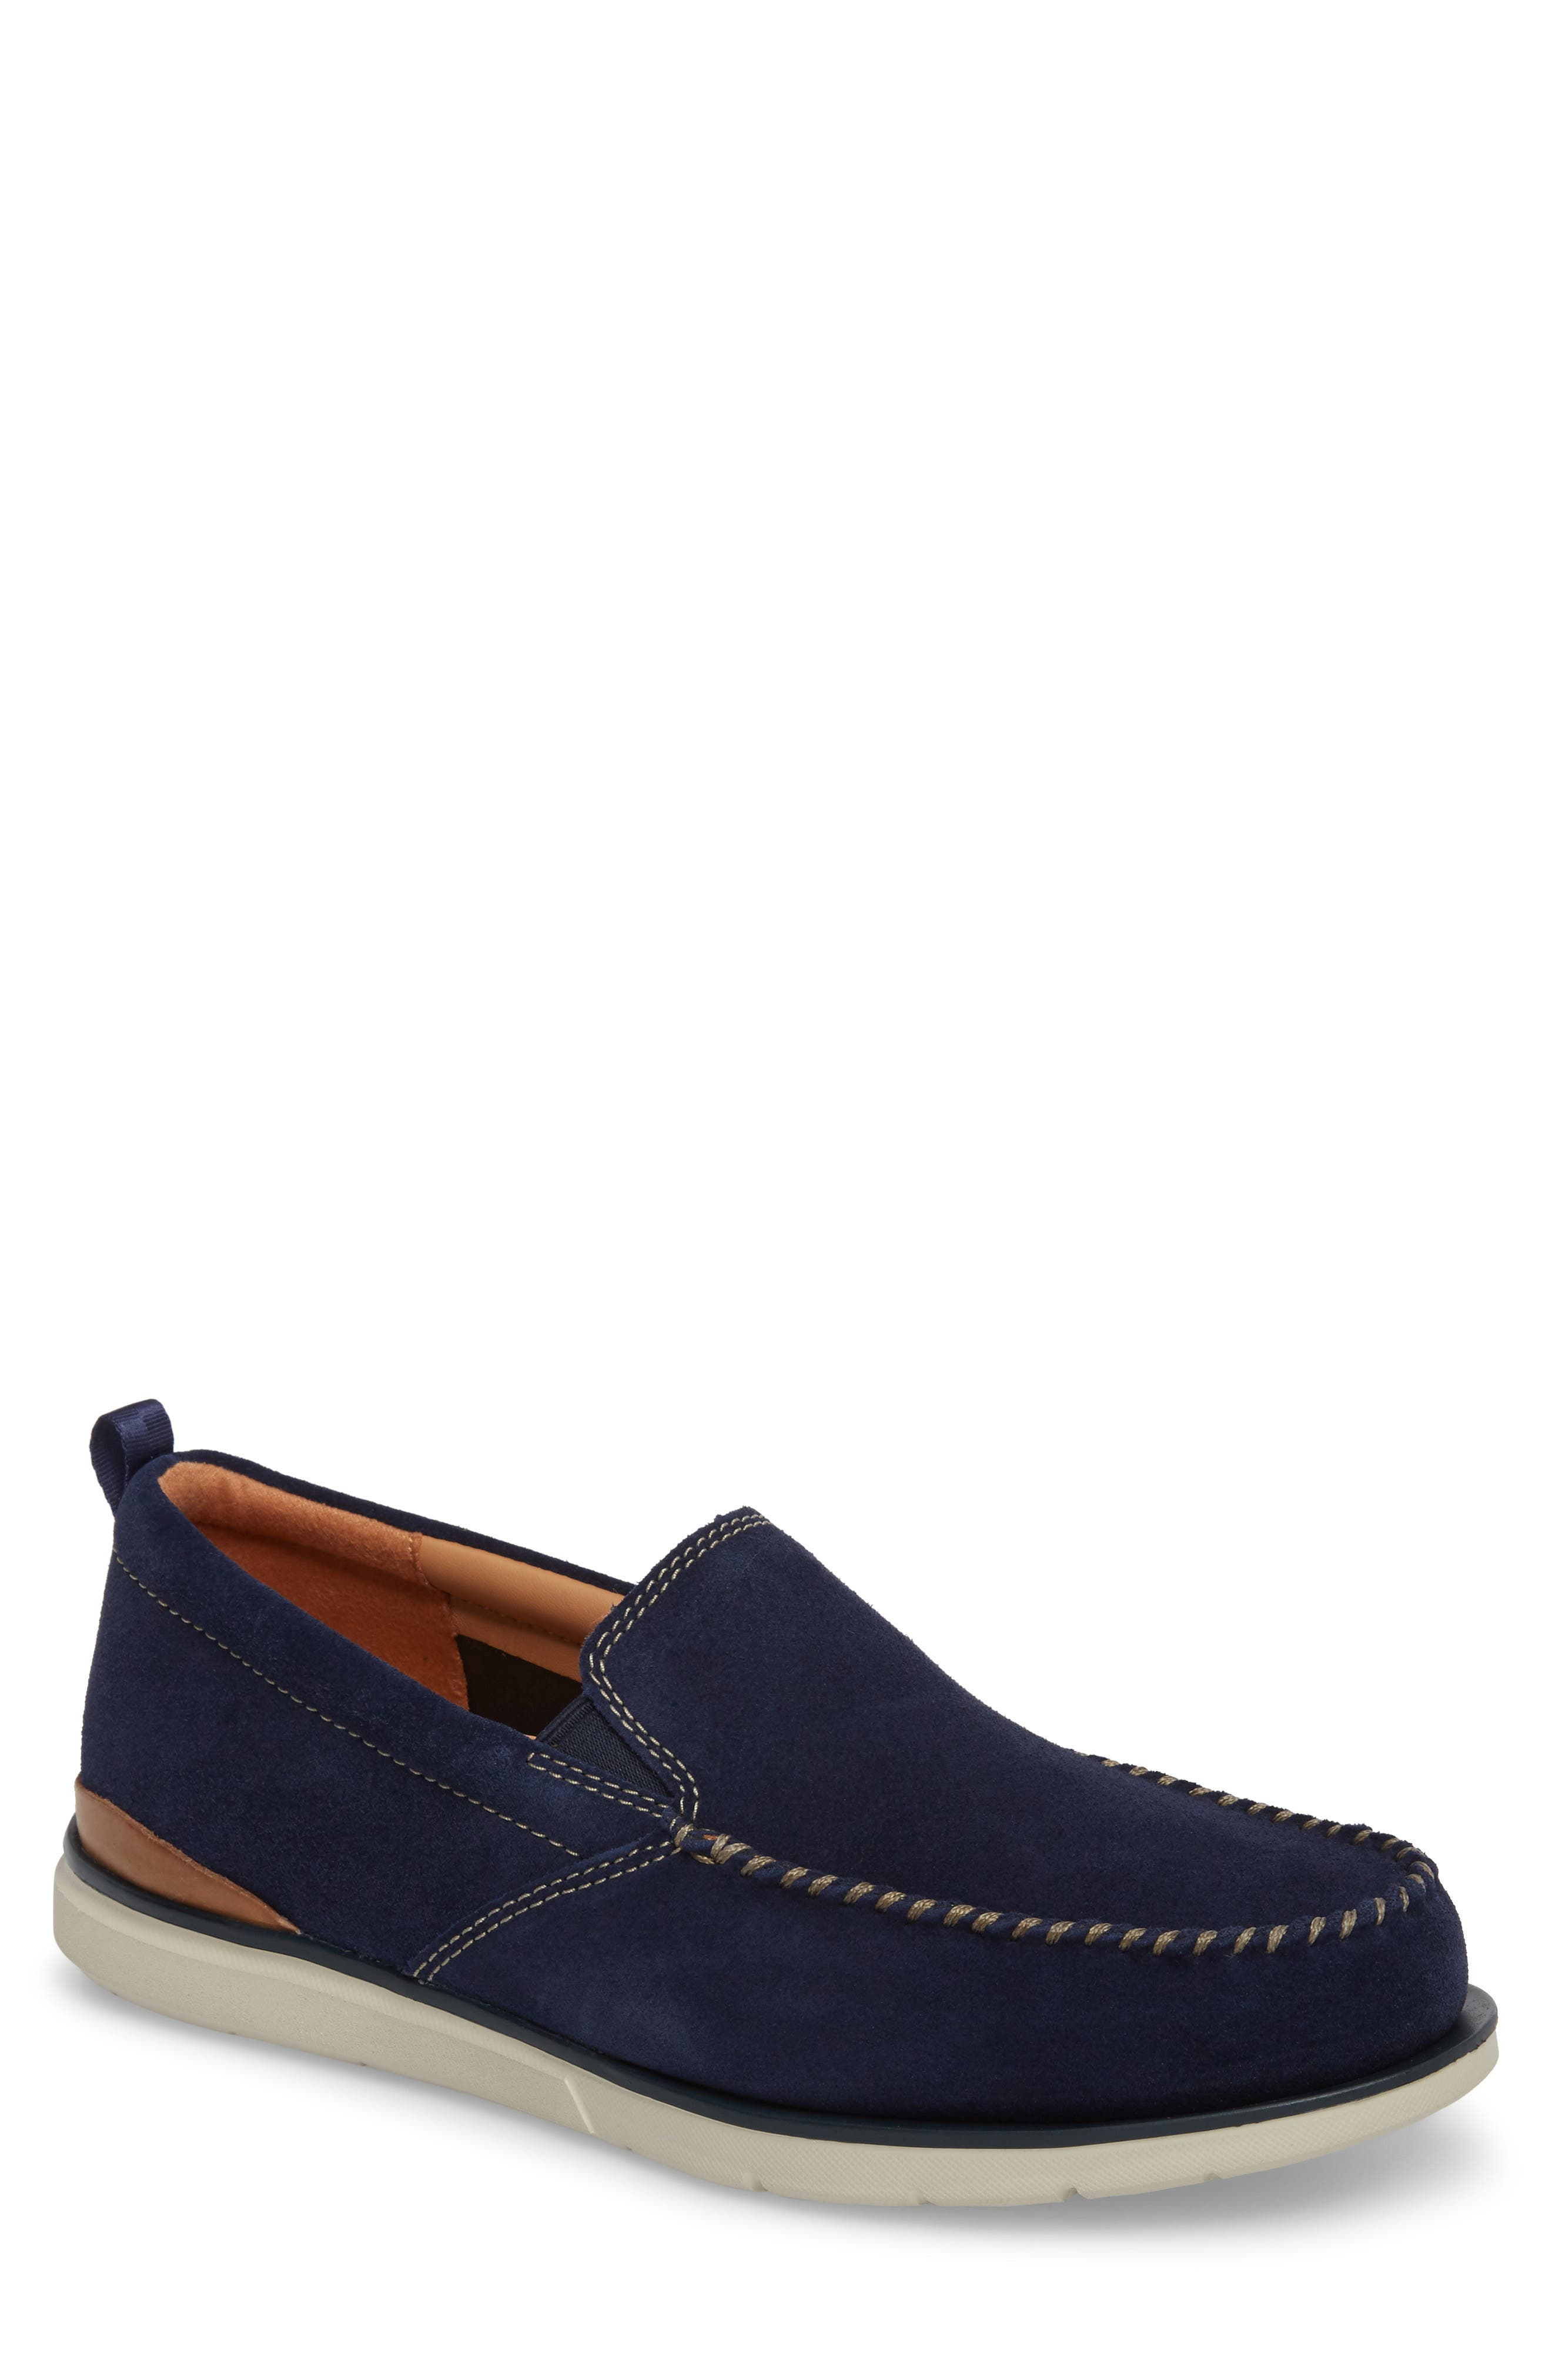 Edgewood Step Moc Toe Loafer,                             Main thumbnail 1, color,                             Blue Suede